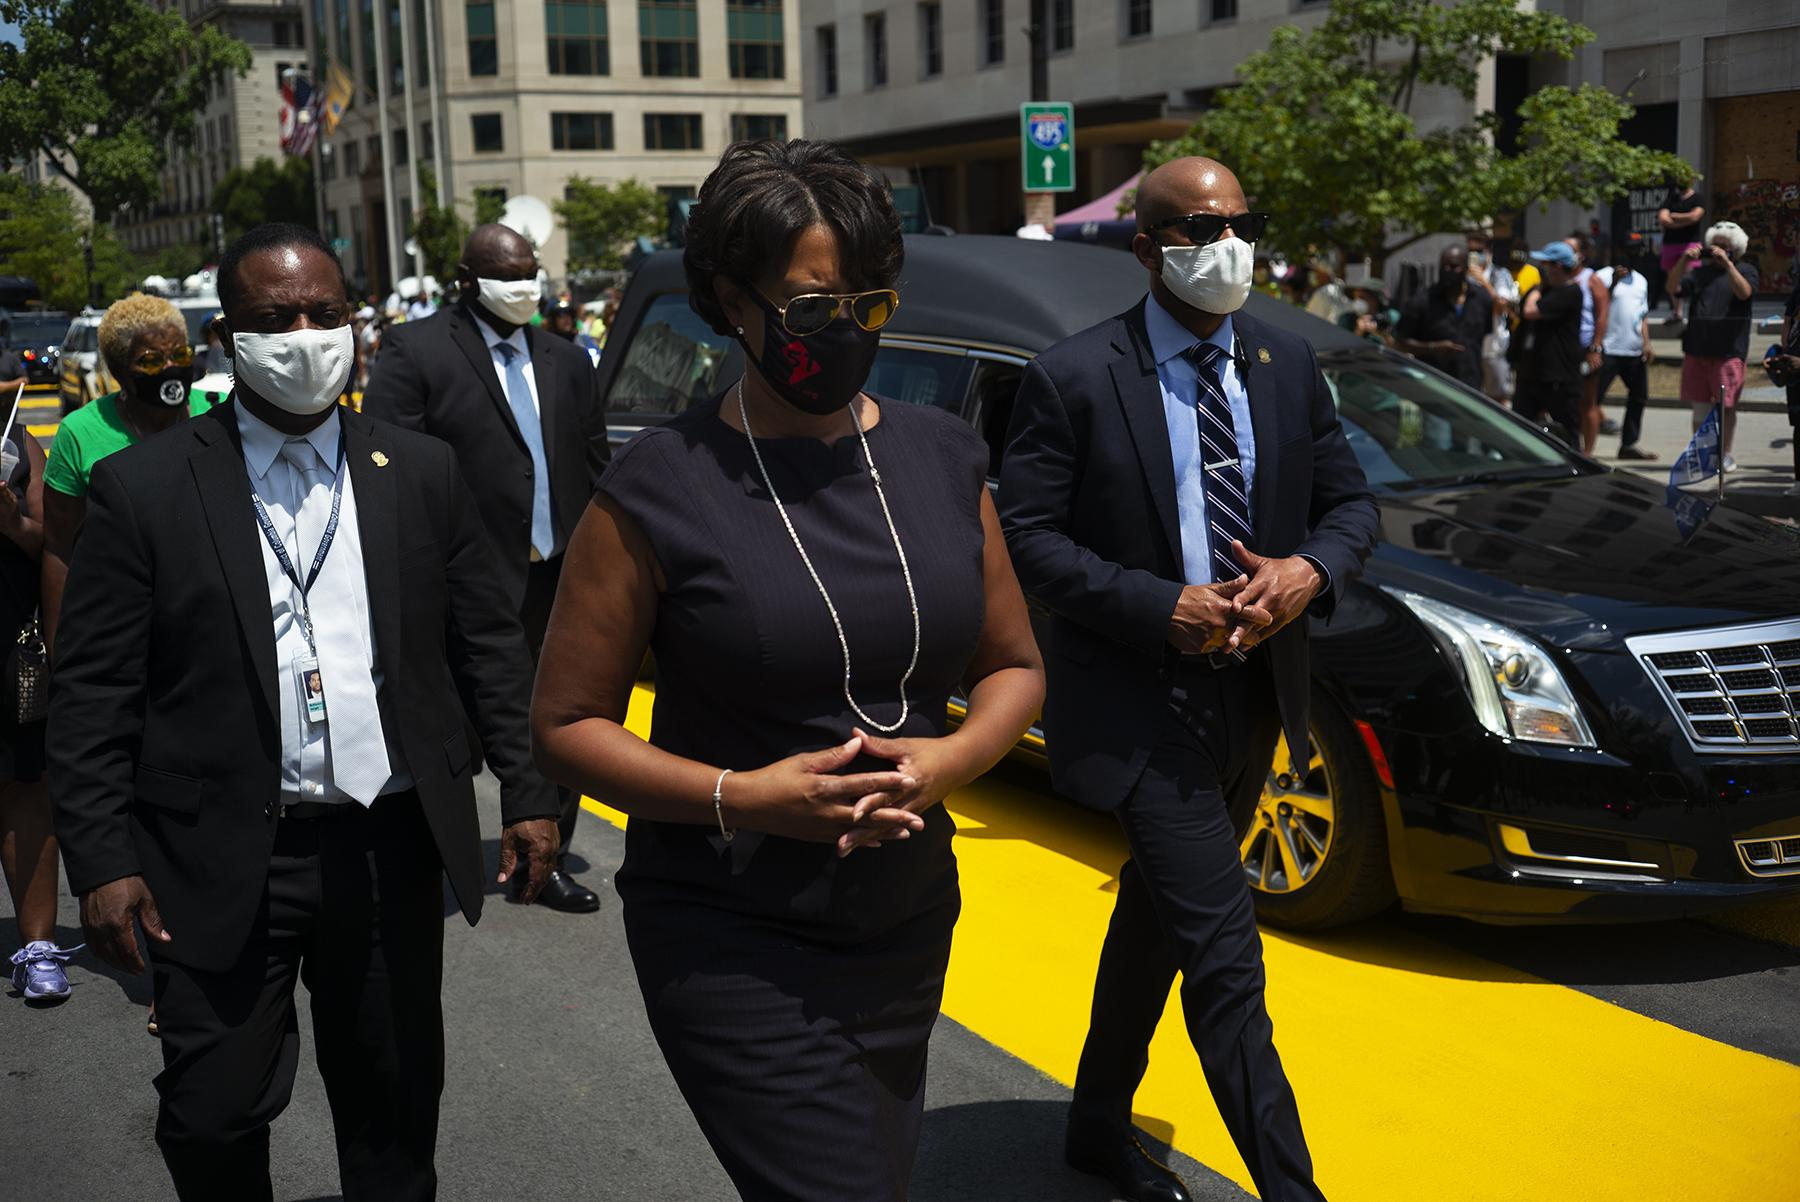 Washington D.C May Muriel Bowser walks alongside of the hearse carrying the body of John Lewis as it passes through Black Lives Matter Plaza on July 27, 2020.